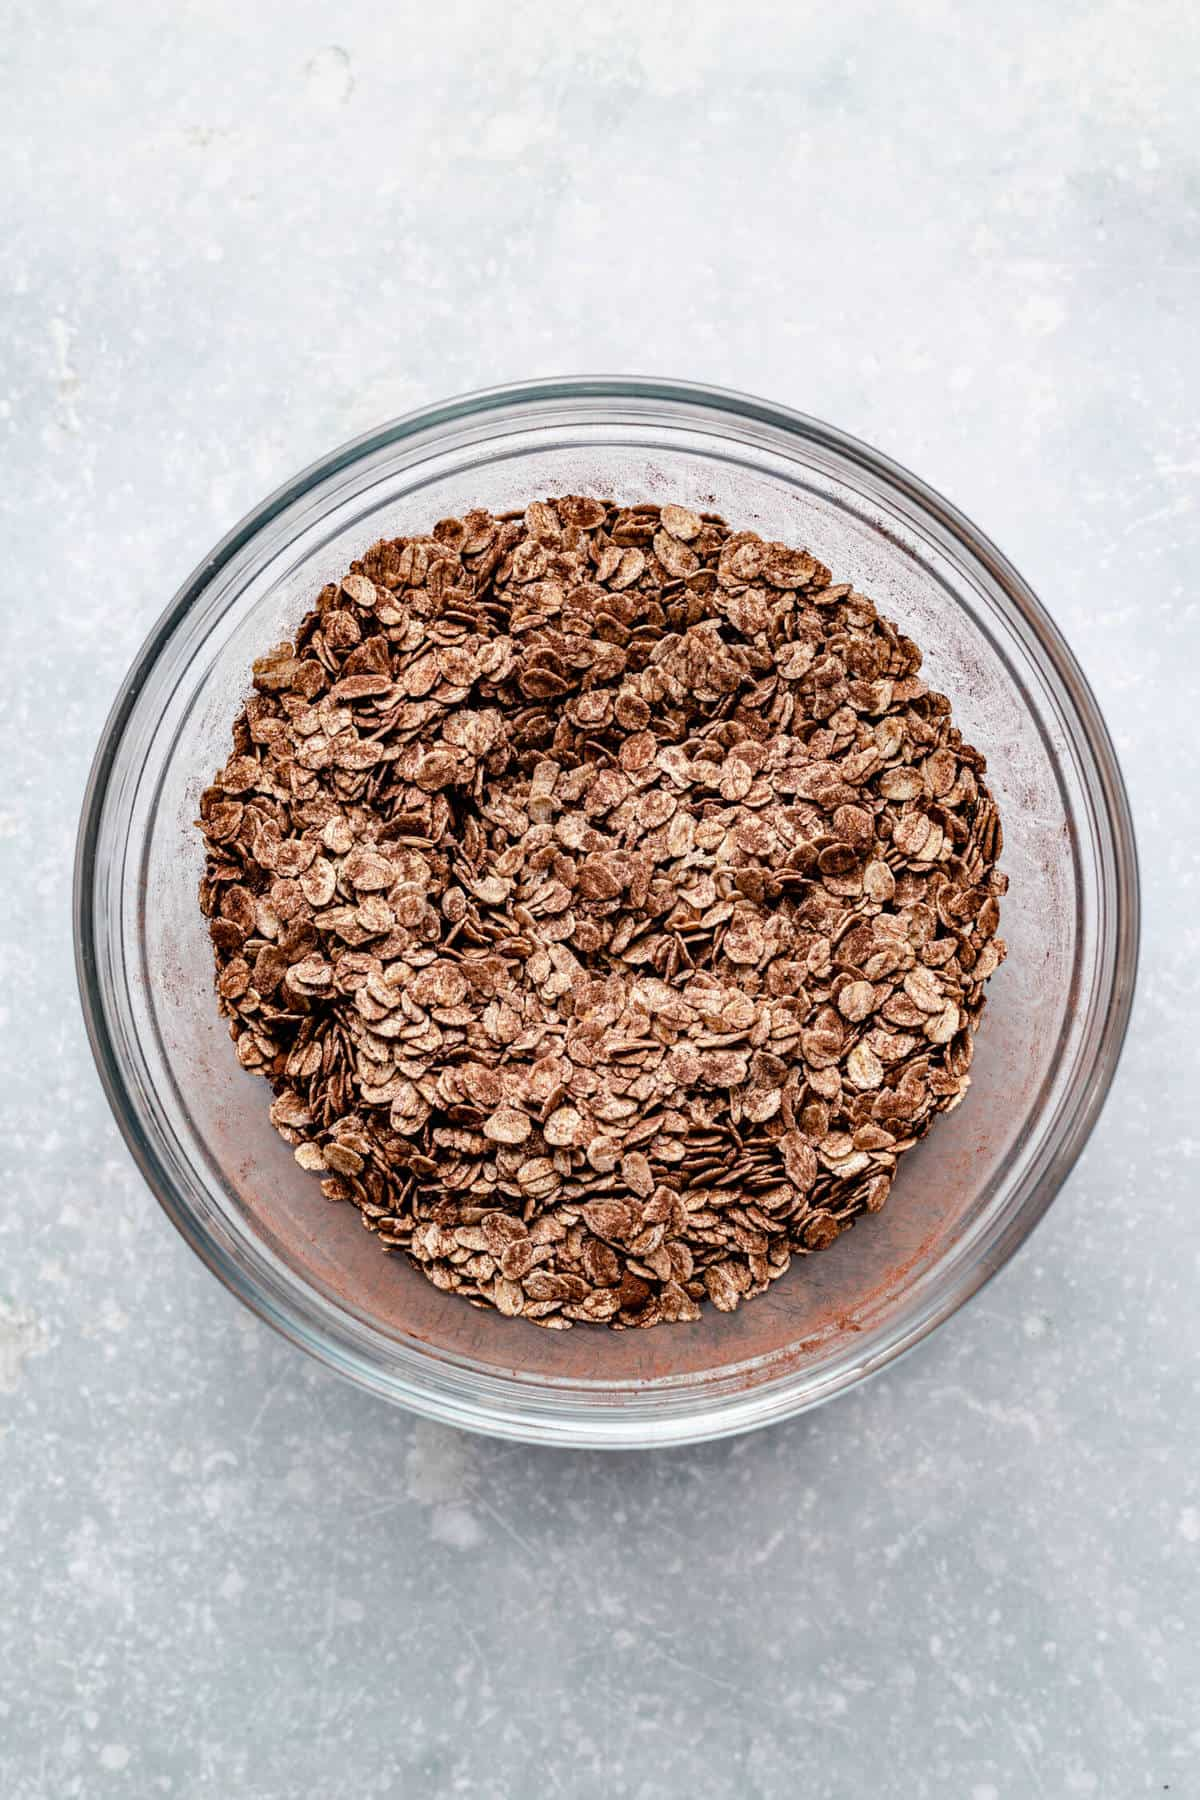 a glass mixing bowl containing rolled oats tossed with cocoa powder